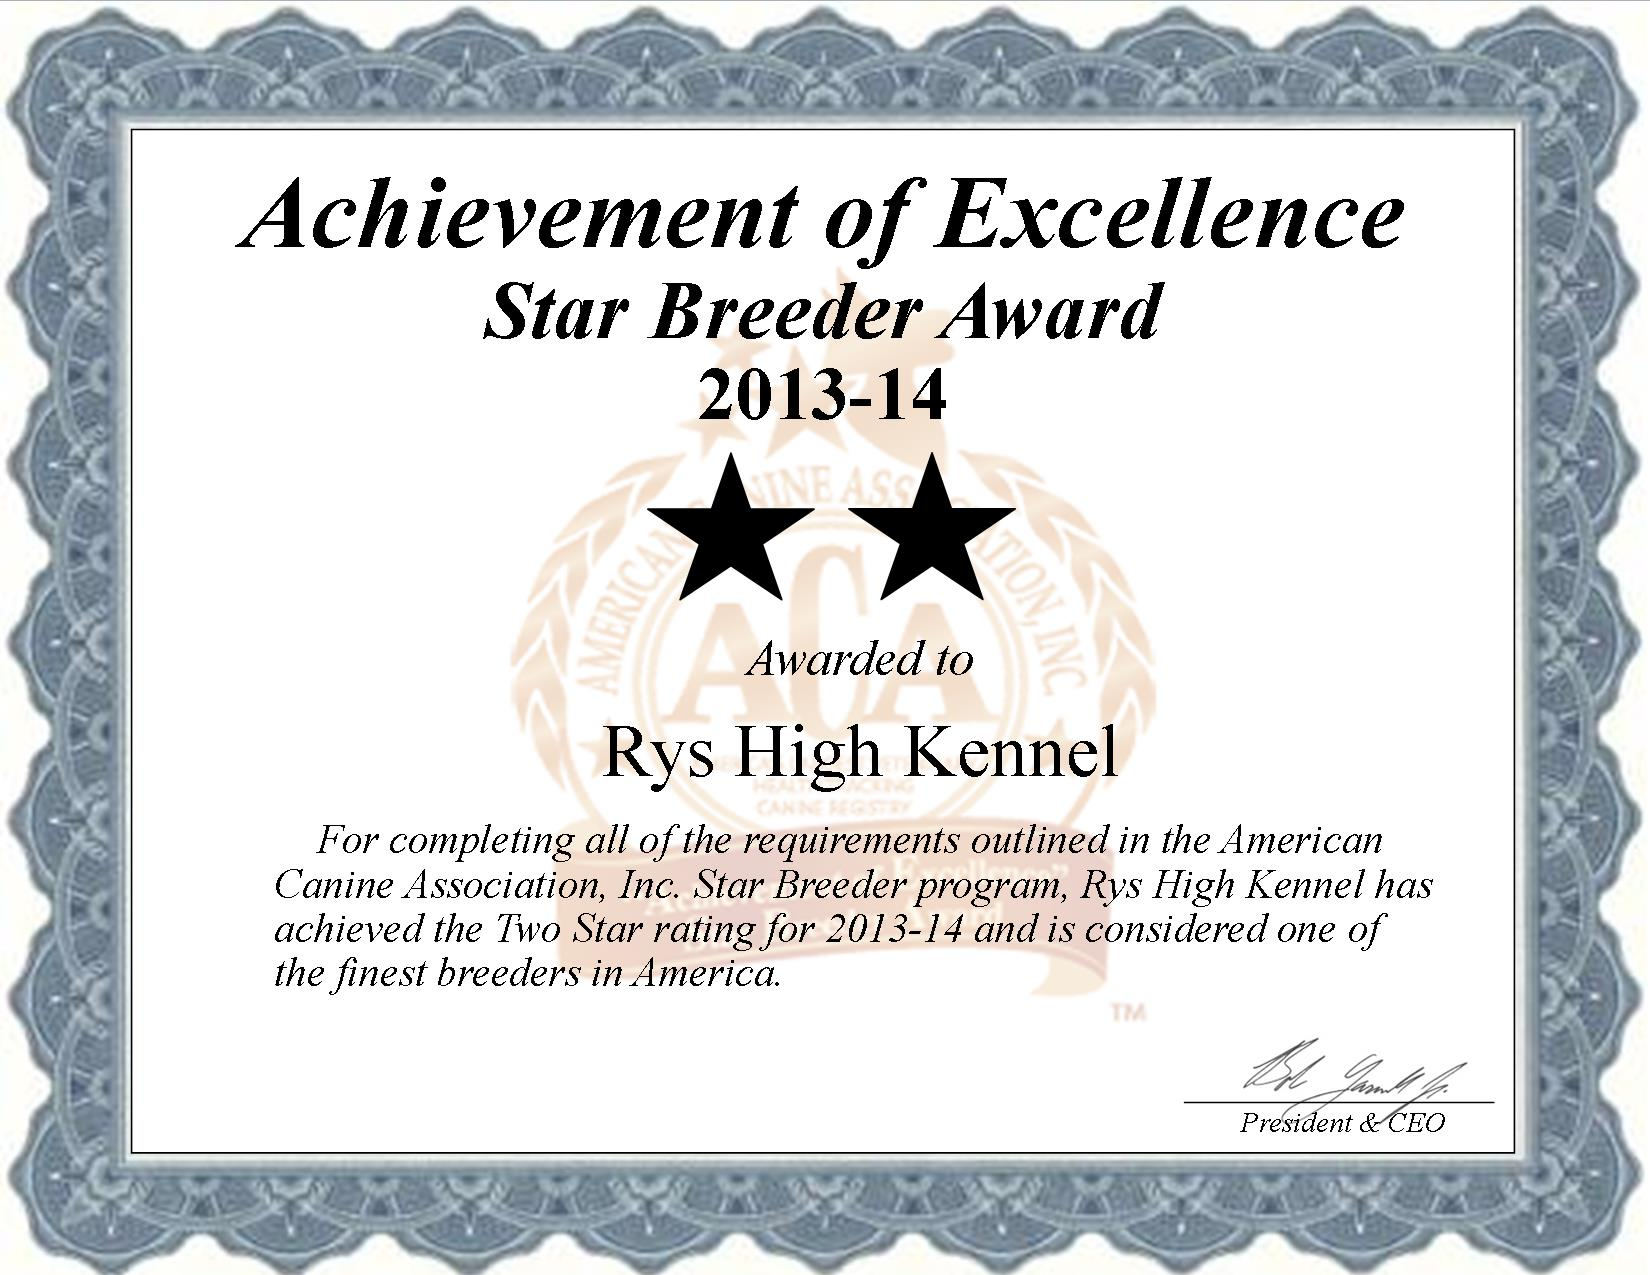 Rys High Kennel, Rys High's Kennel, breeder, star breeder, aca, star breeder, 2 star, Pattonsburg, Missouri, Mo, dog, puppy, puppies, dog breeder, dog breeders, Missouri breeder, Rys High Kennel dog breeder